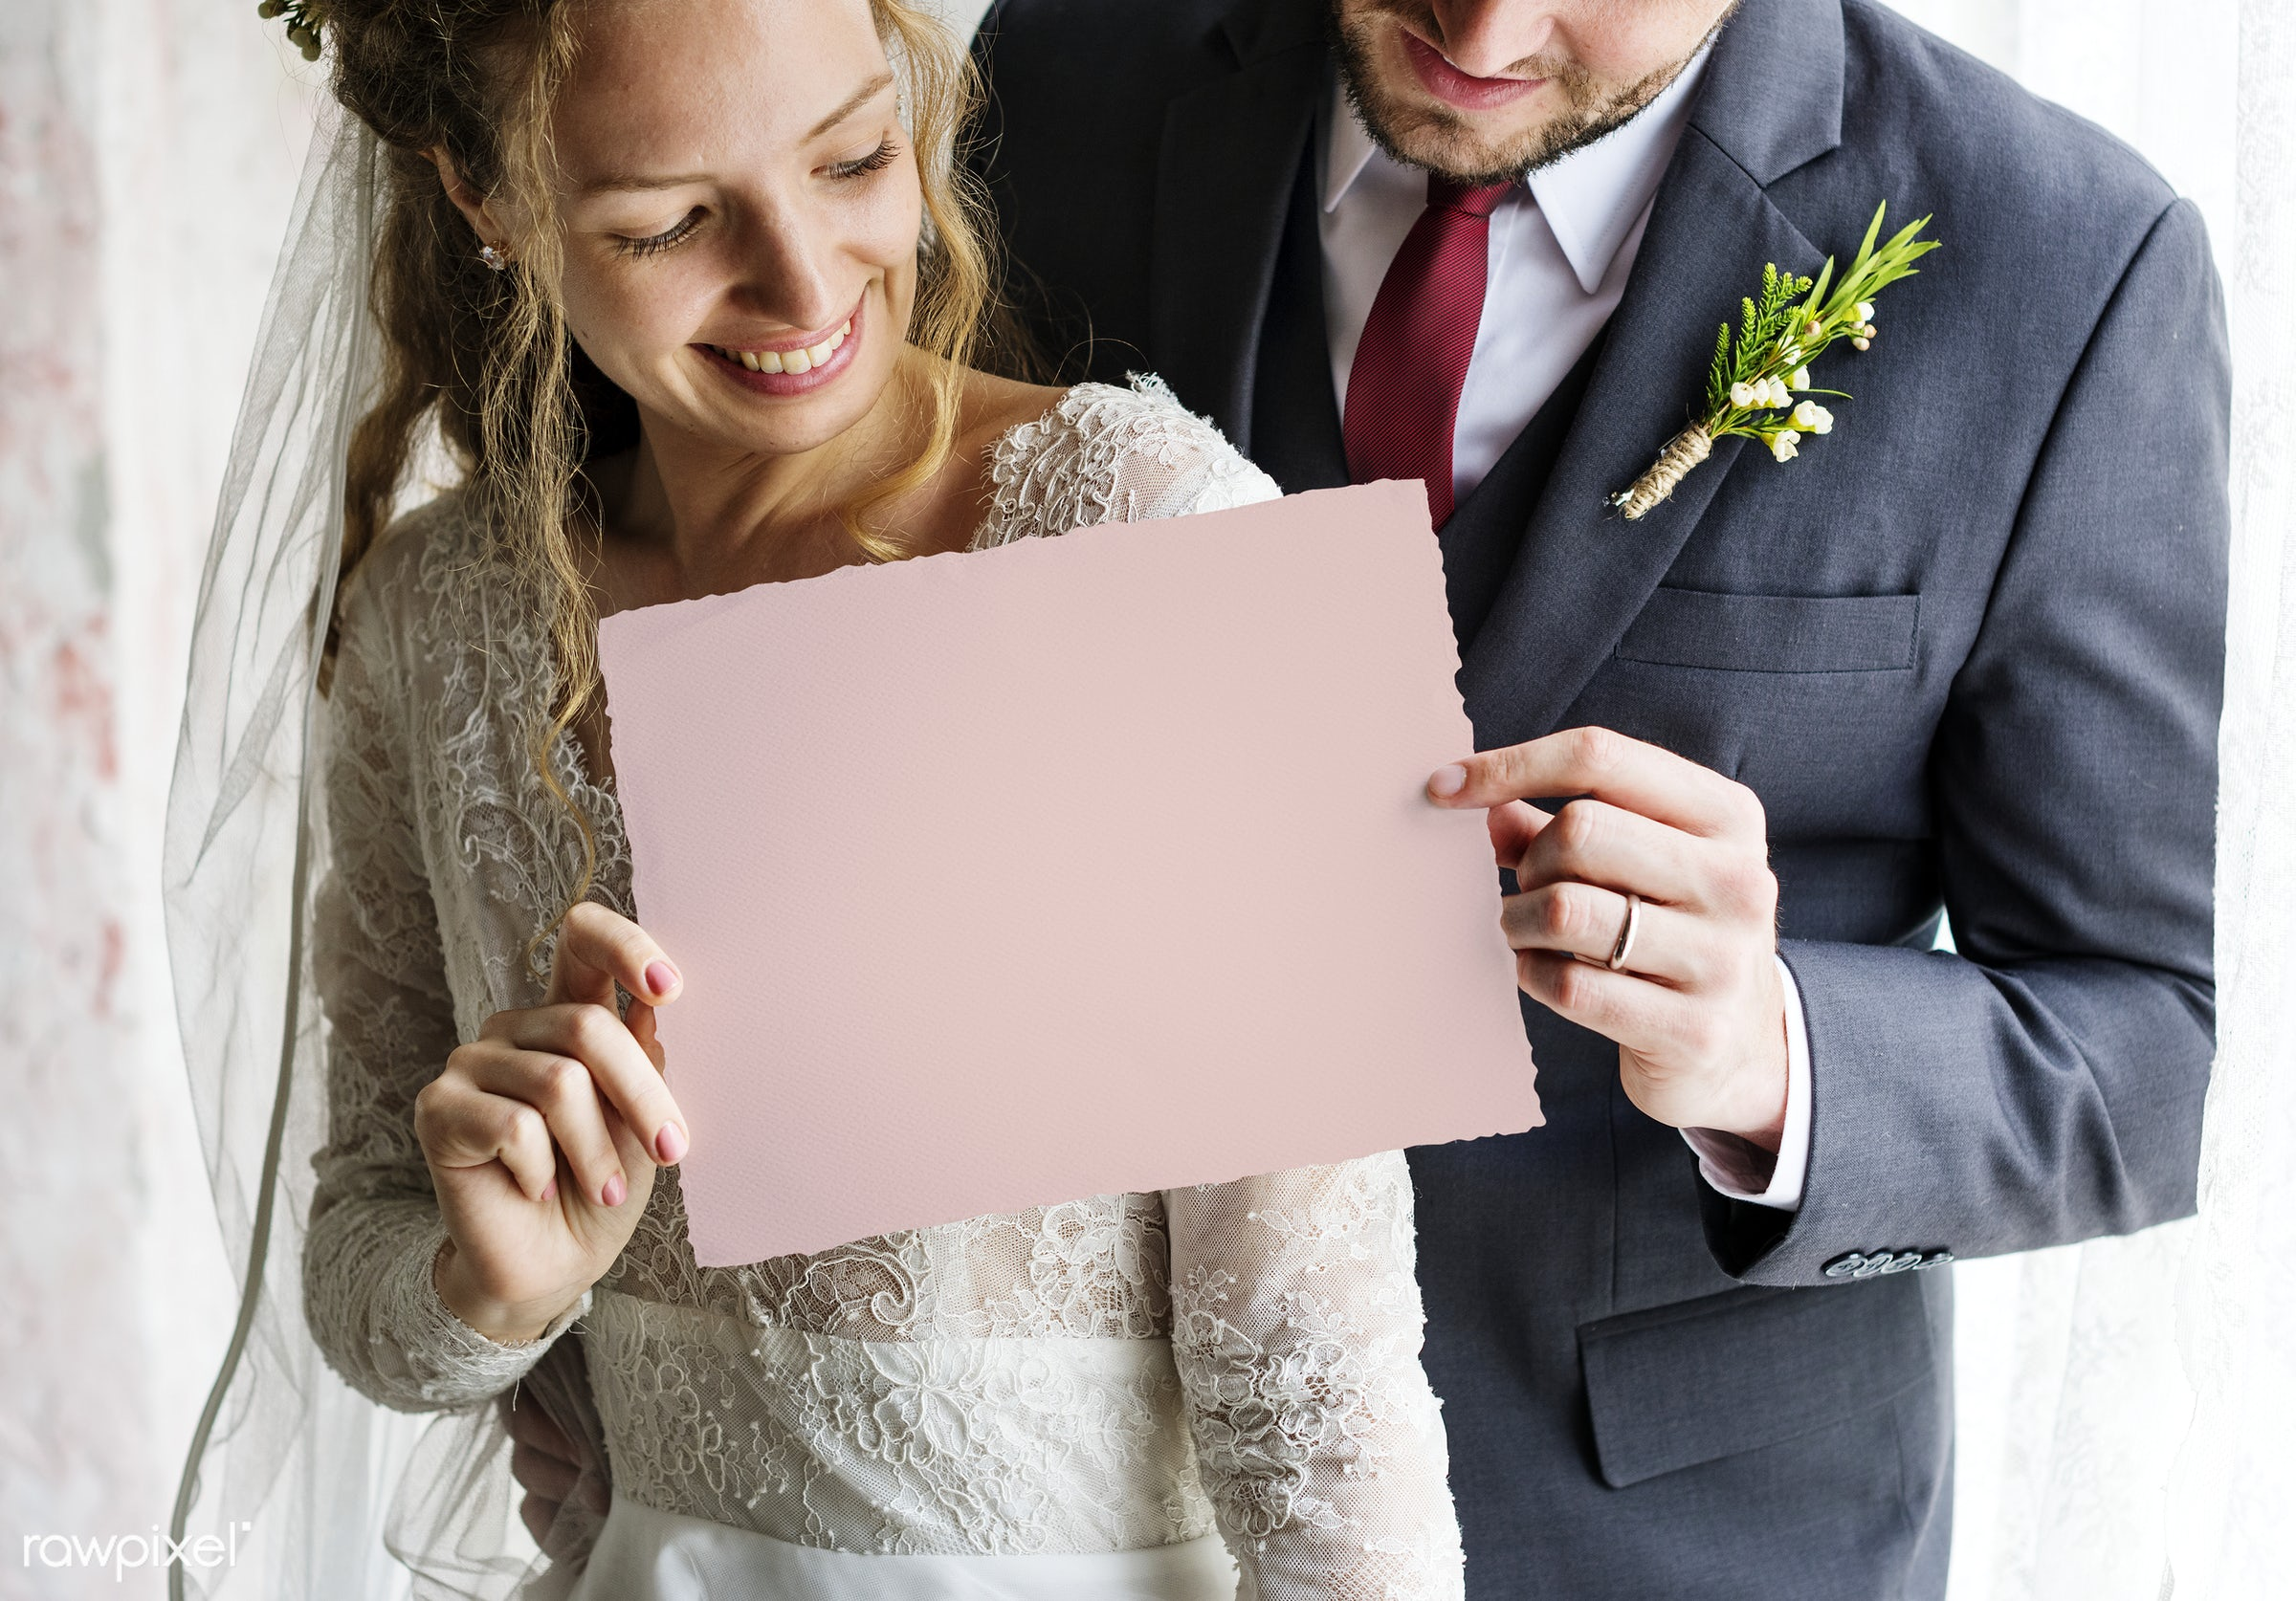 Bride and Groom Showing Blank Paper on Wedding Day - wedding, dress, adult, attractive, beautiful, blank, bride, celebration...